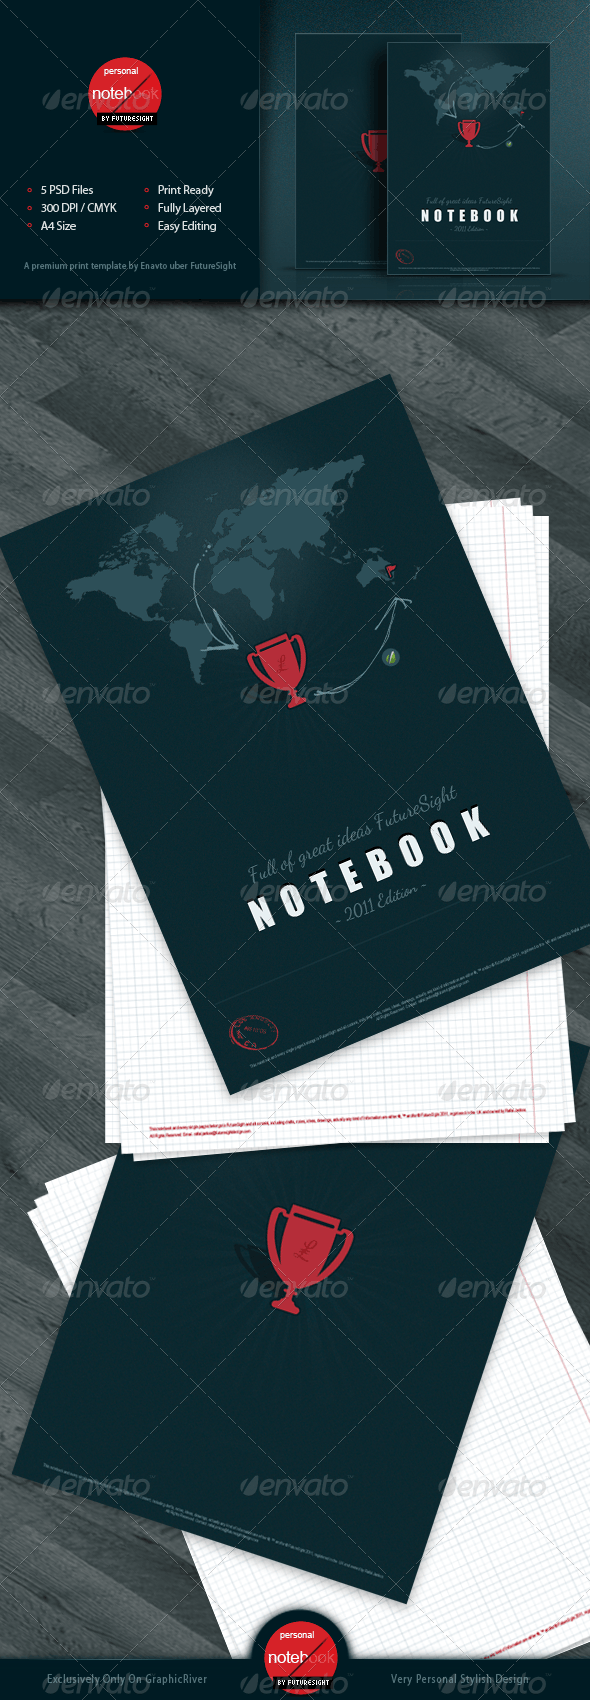 Book & Notebook - Stationery Print Templates